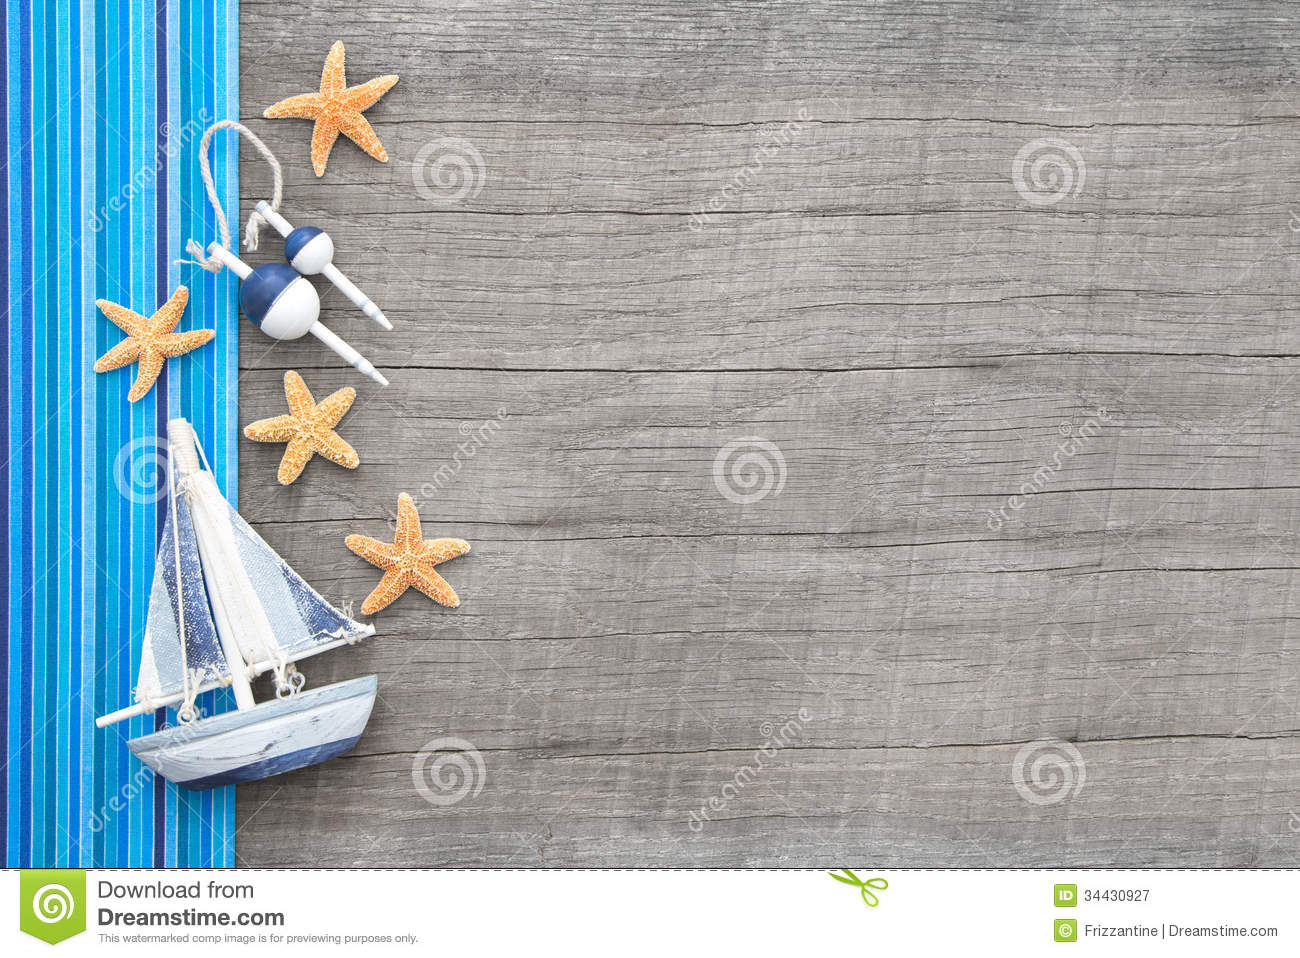 sailboat and starfishes on wooden shabby chic background royalty free stock photography image. Black Bedroom Furniture Sets. Home Design Ideas